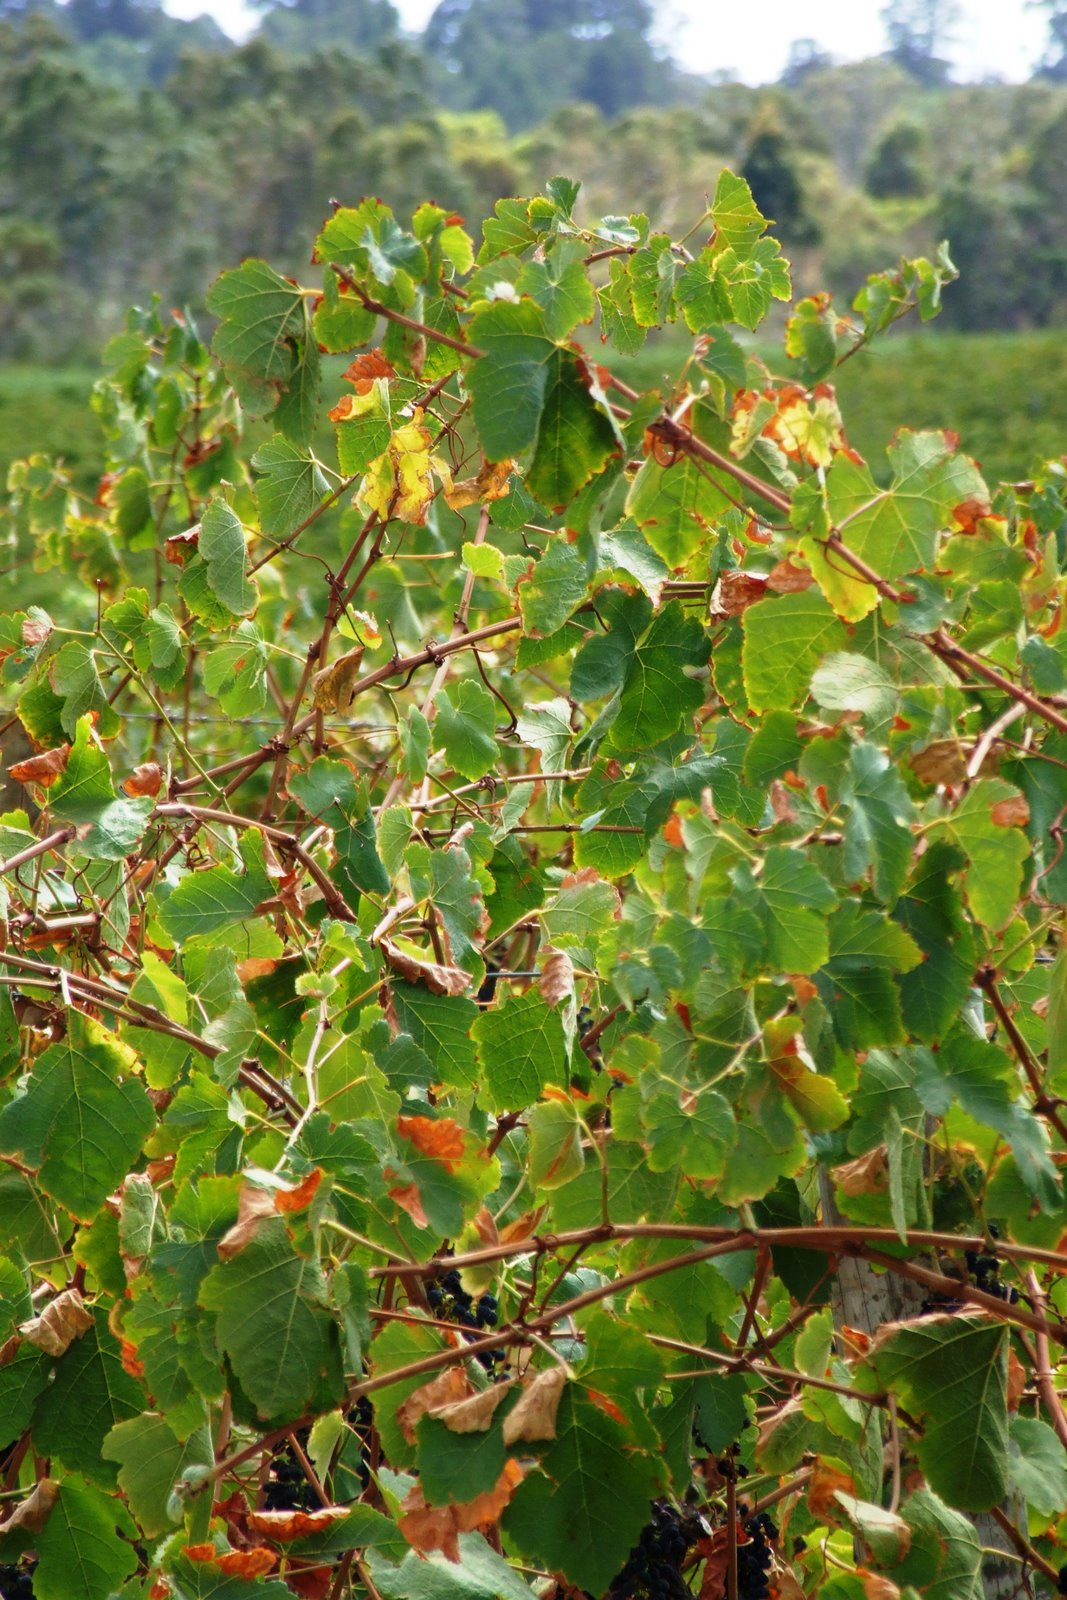 A vineyard with leaf scorching at the point of harvest (E-L 38).